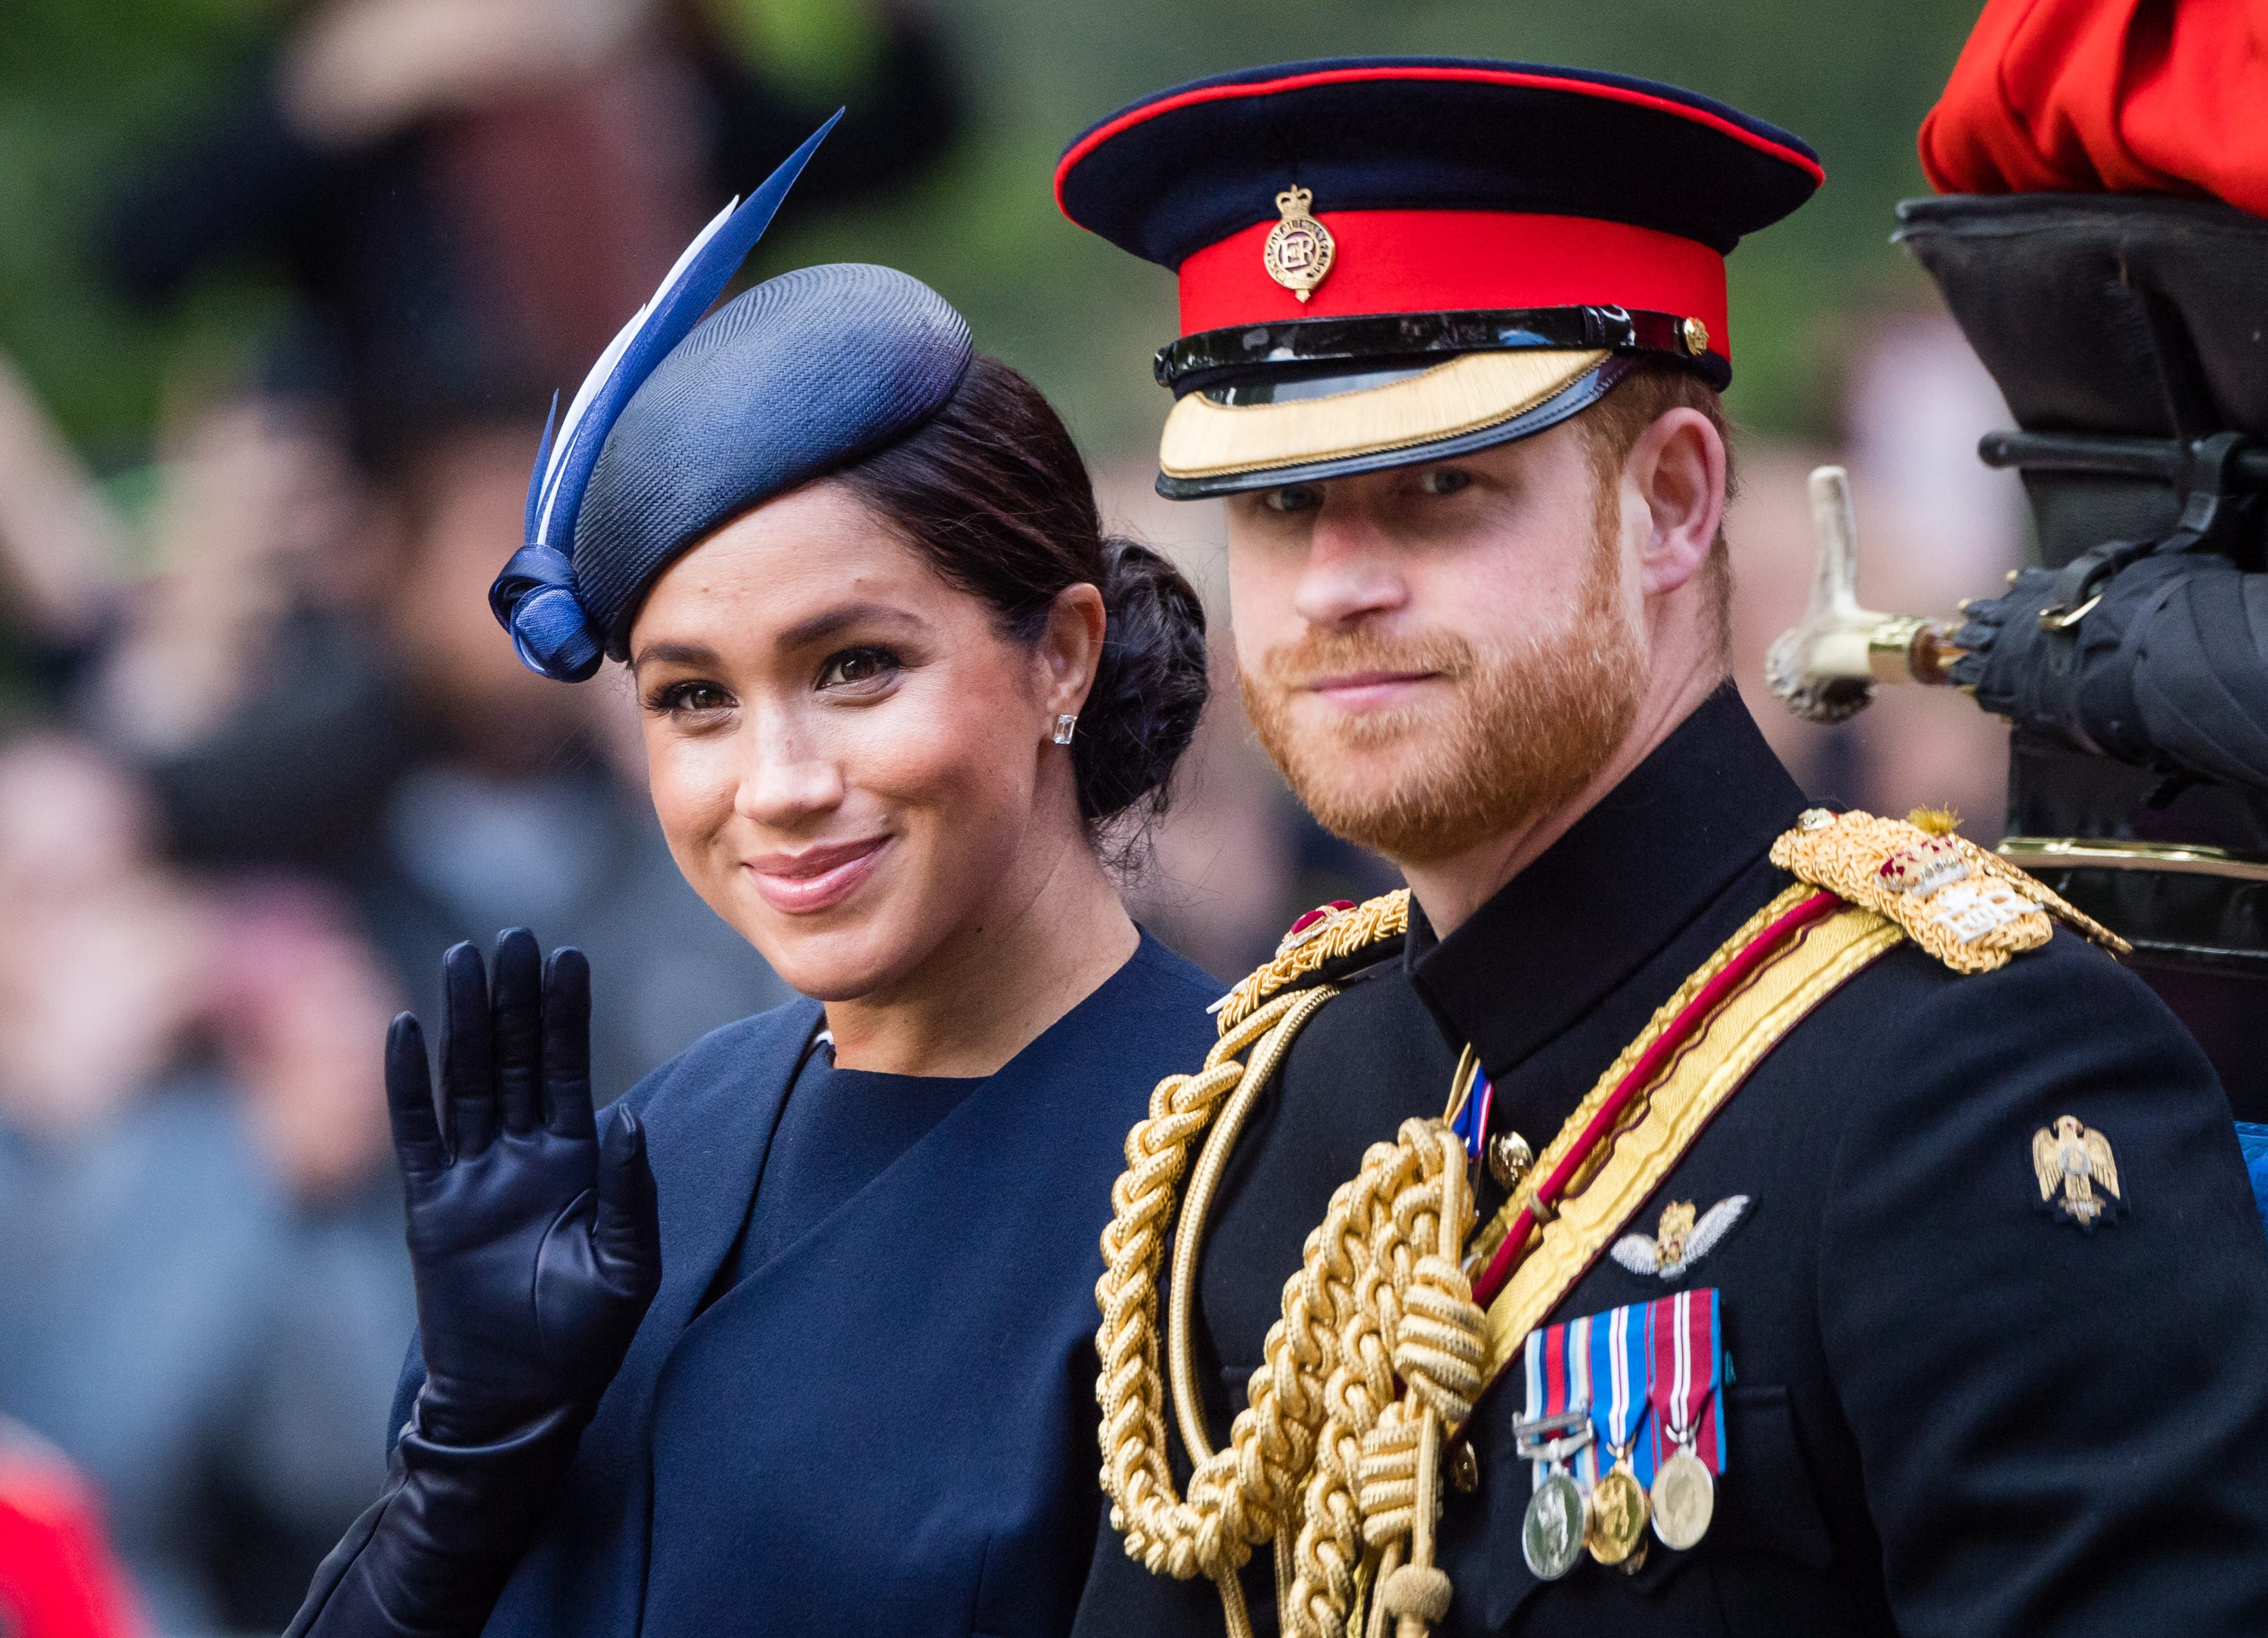 Meghan Markle makes appearance at Trooping the Colour